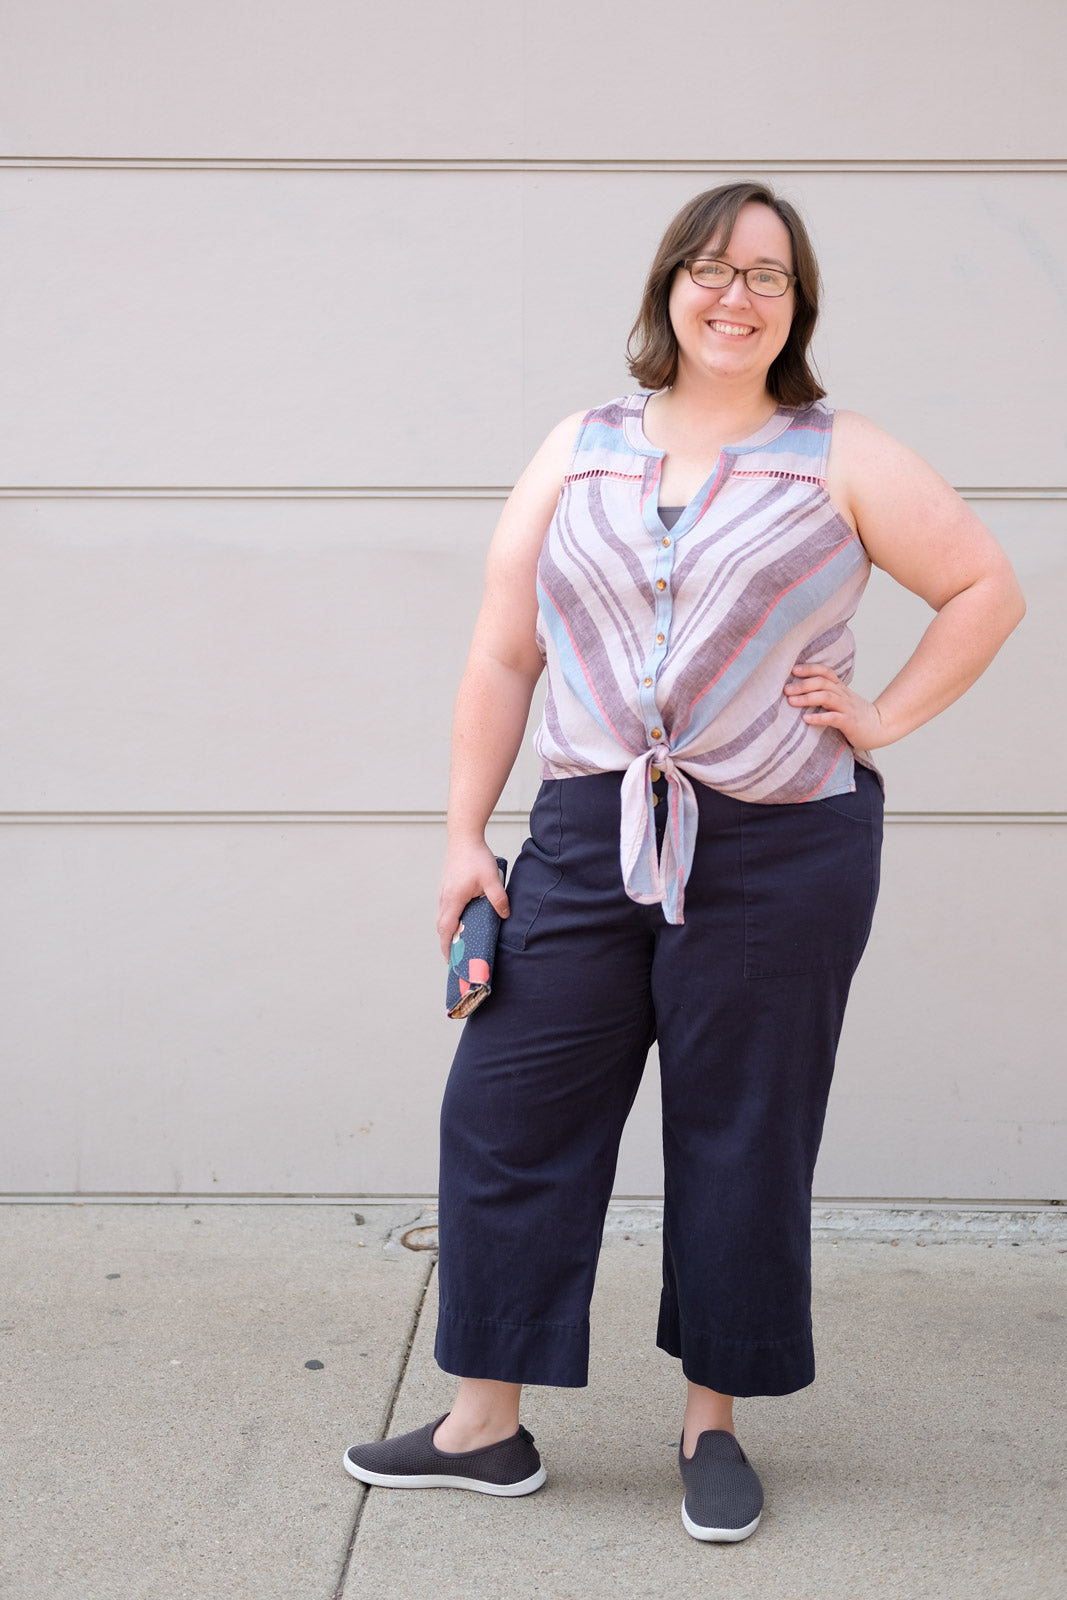 Caitlin in her Navy Blue Lander Pants